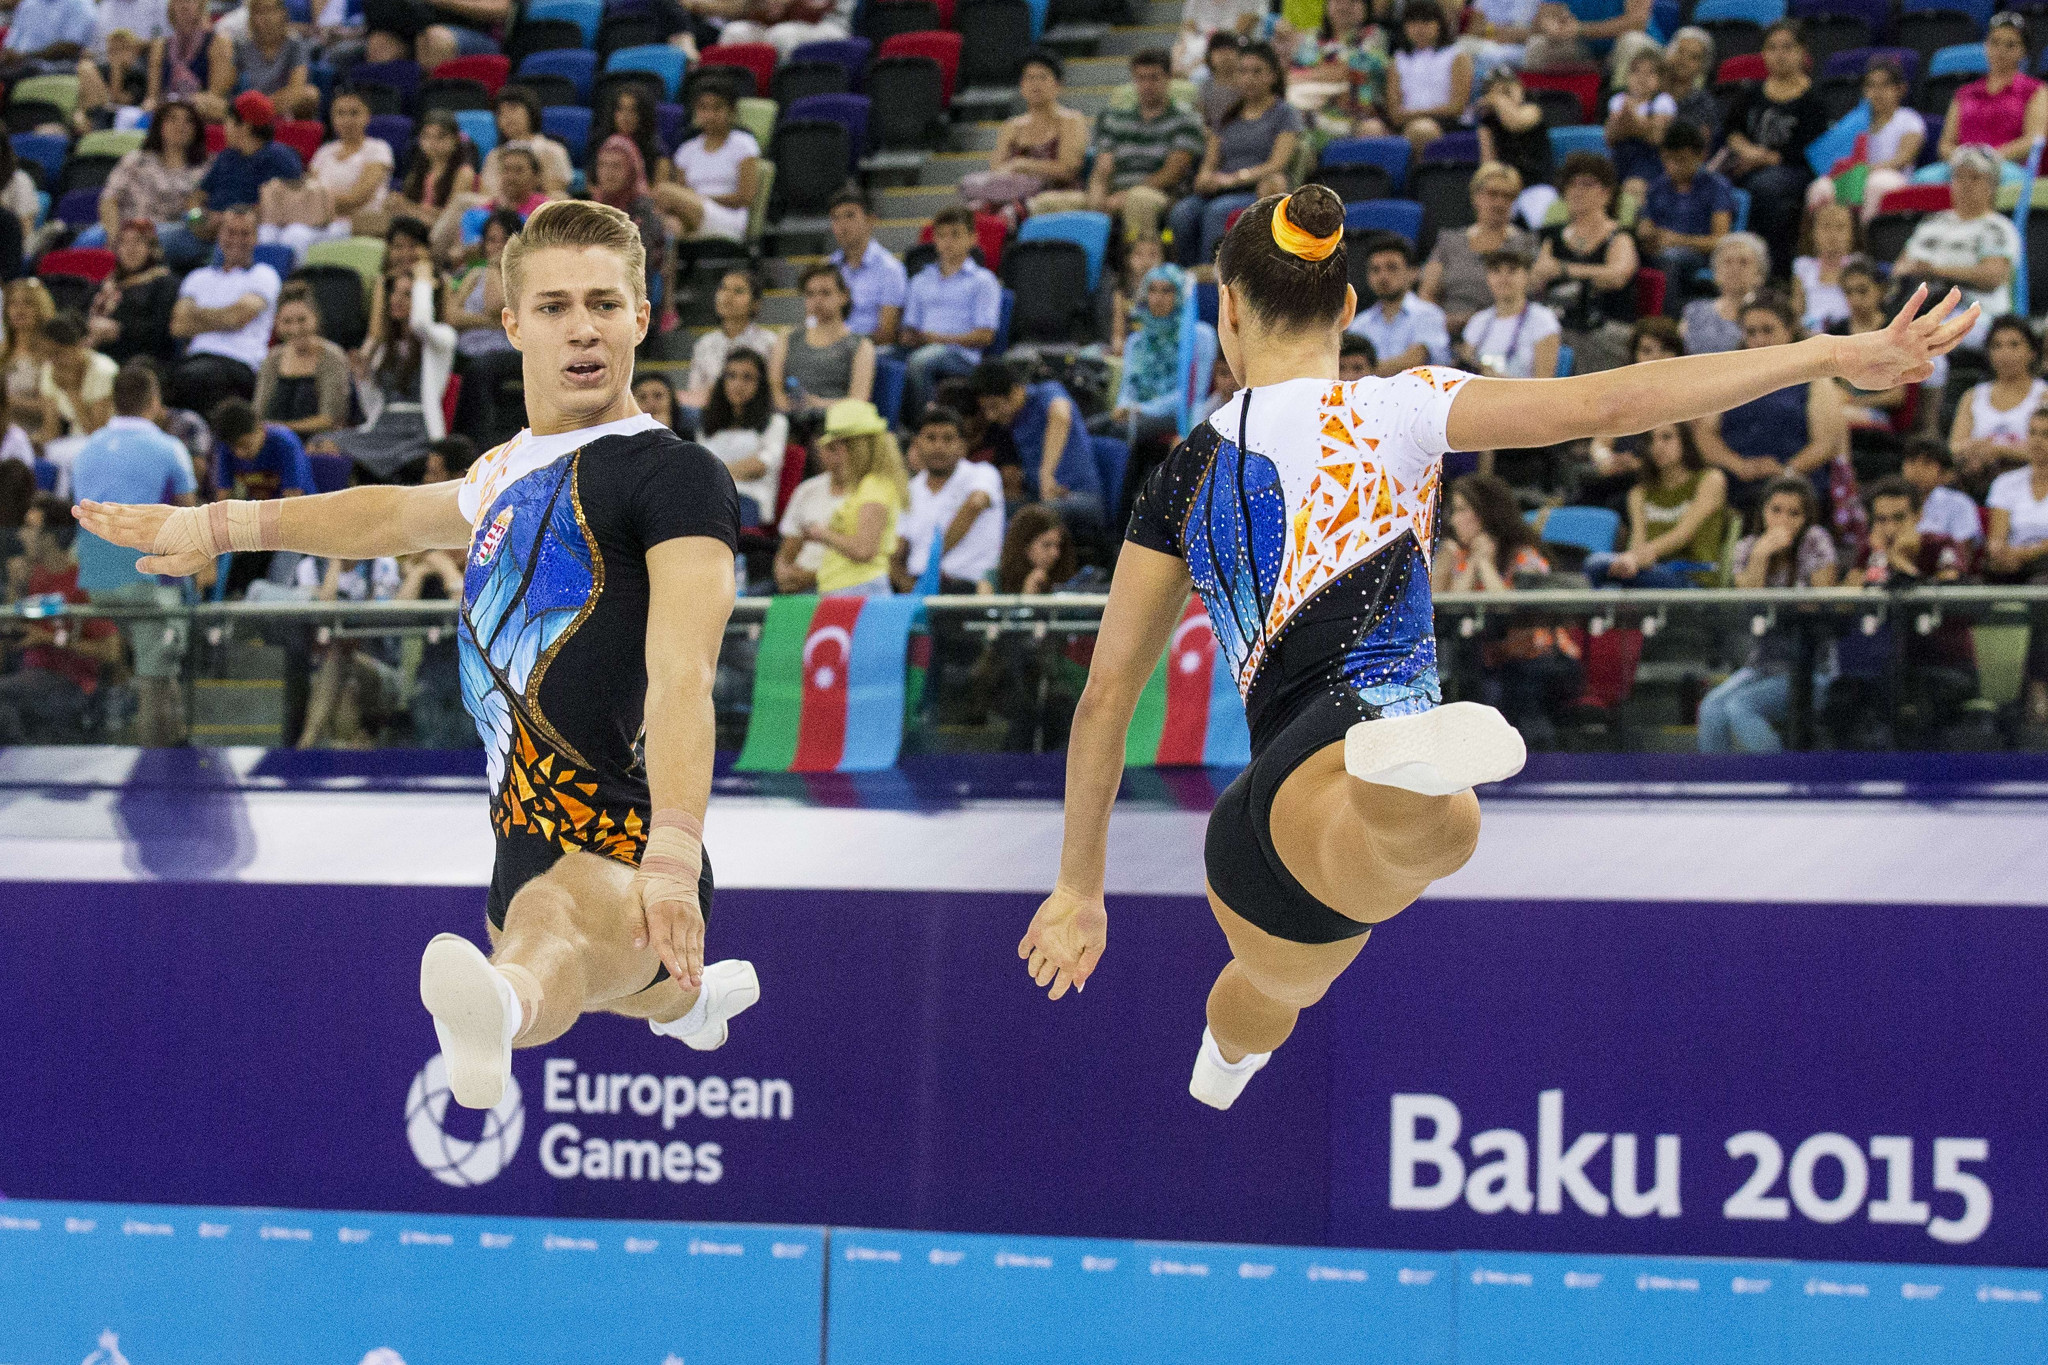 Hungary's Daniel Bali, left, competing in the mixed pair, will be seeking to add to his collection of gold medals at this weekend's Aerobic Gymnastics European Championships in Baku ©Getty Images